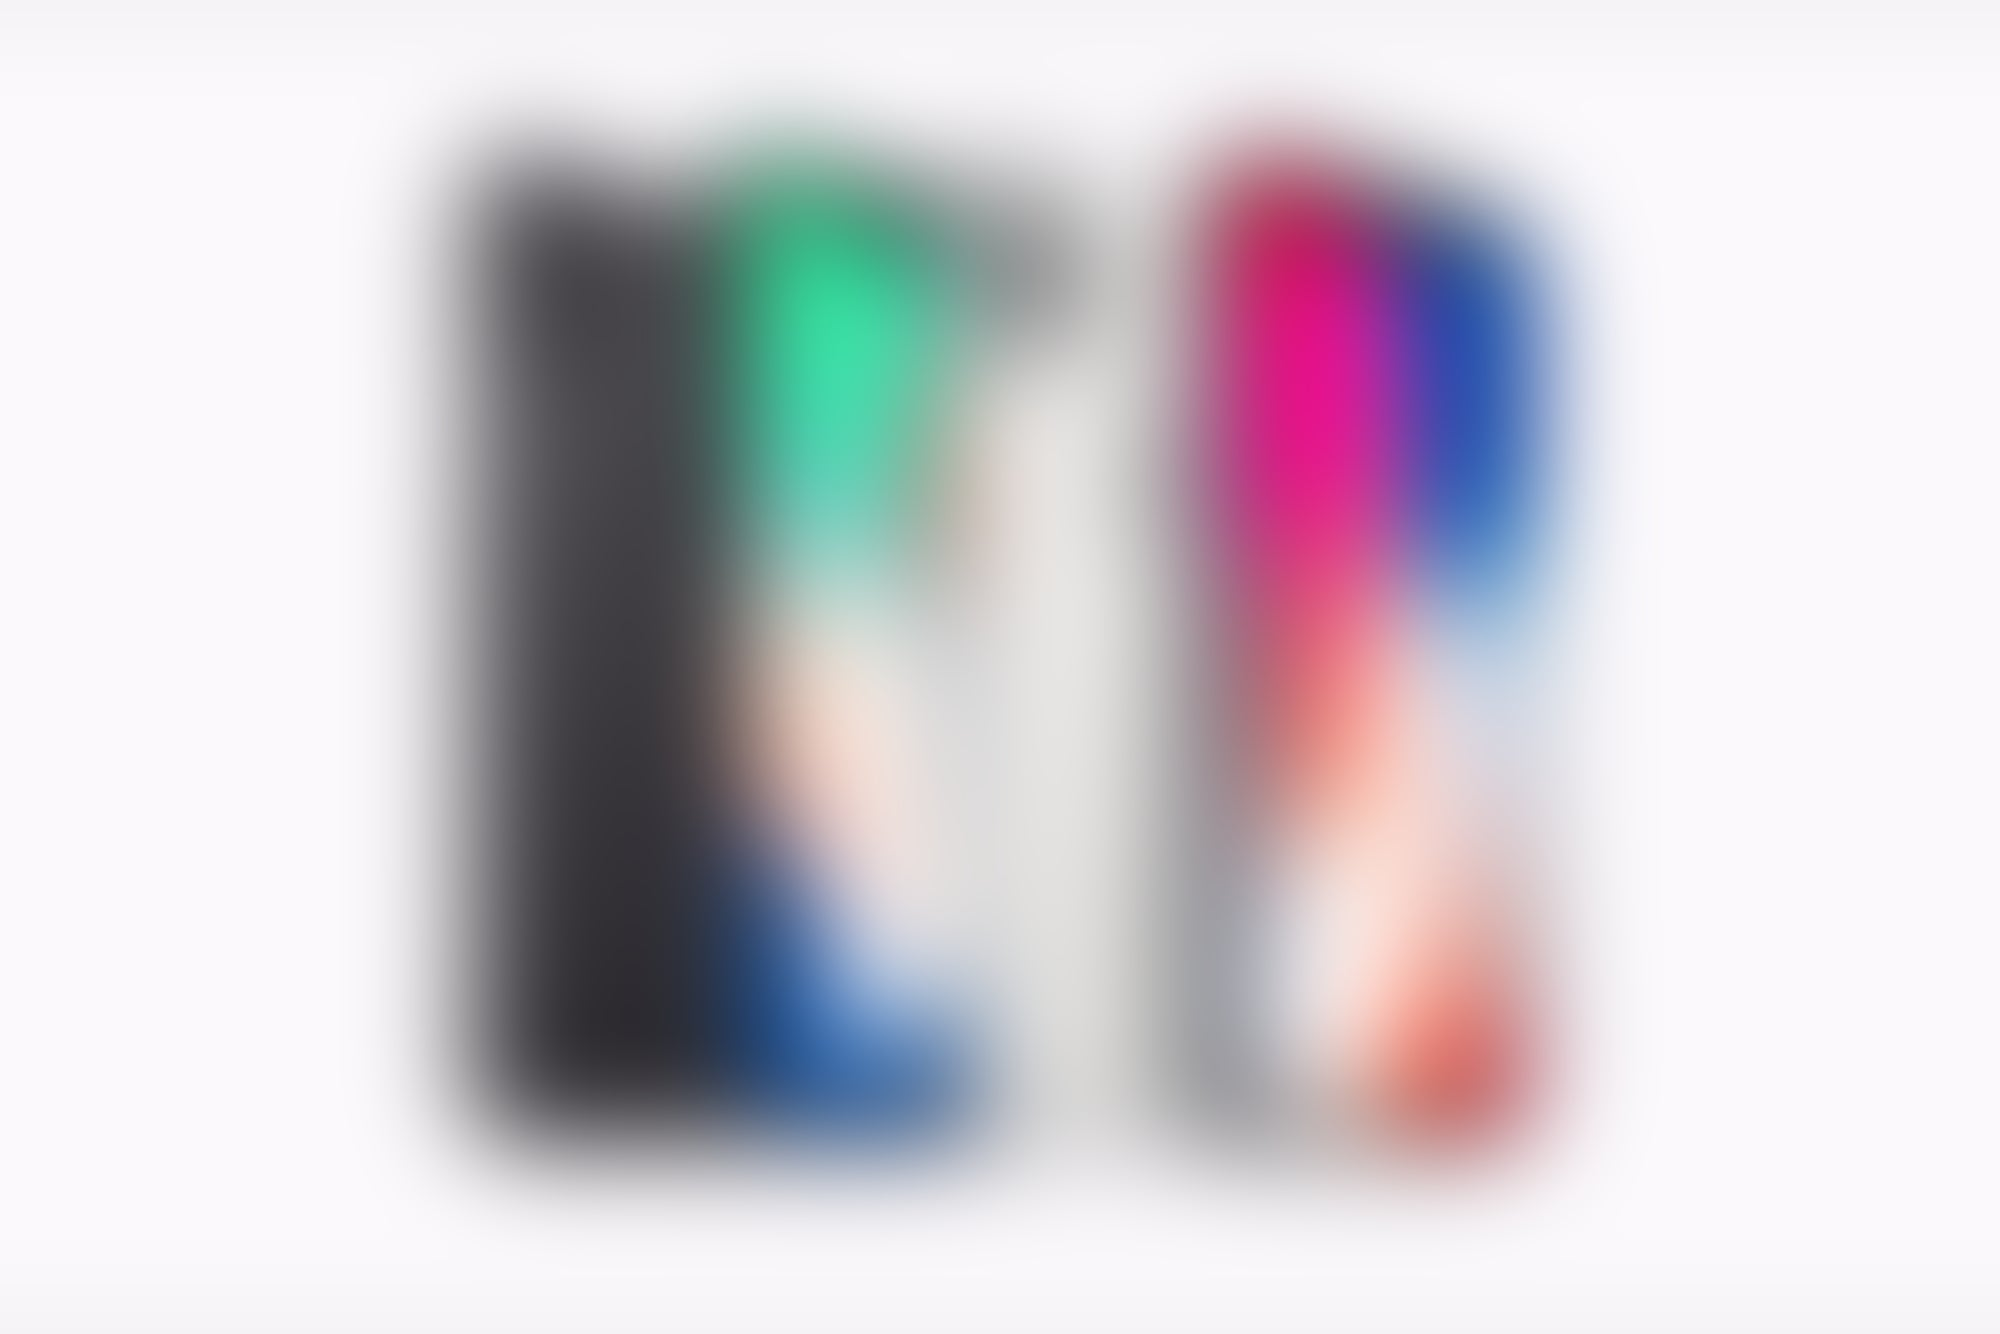 Everything We Know About the iPhone X